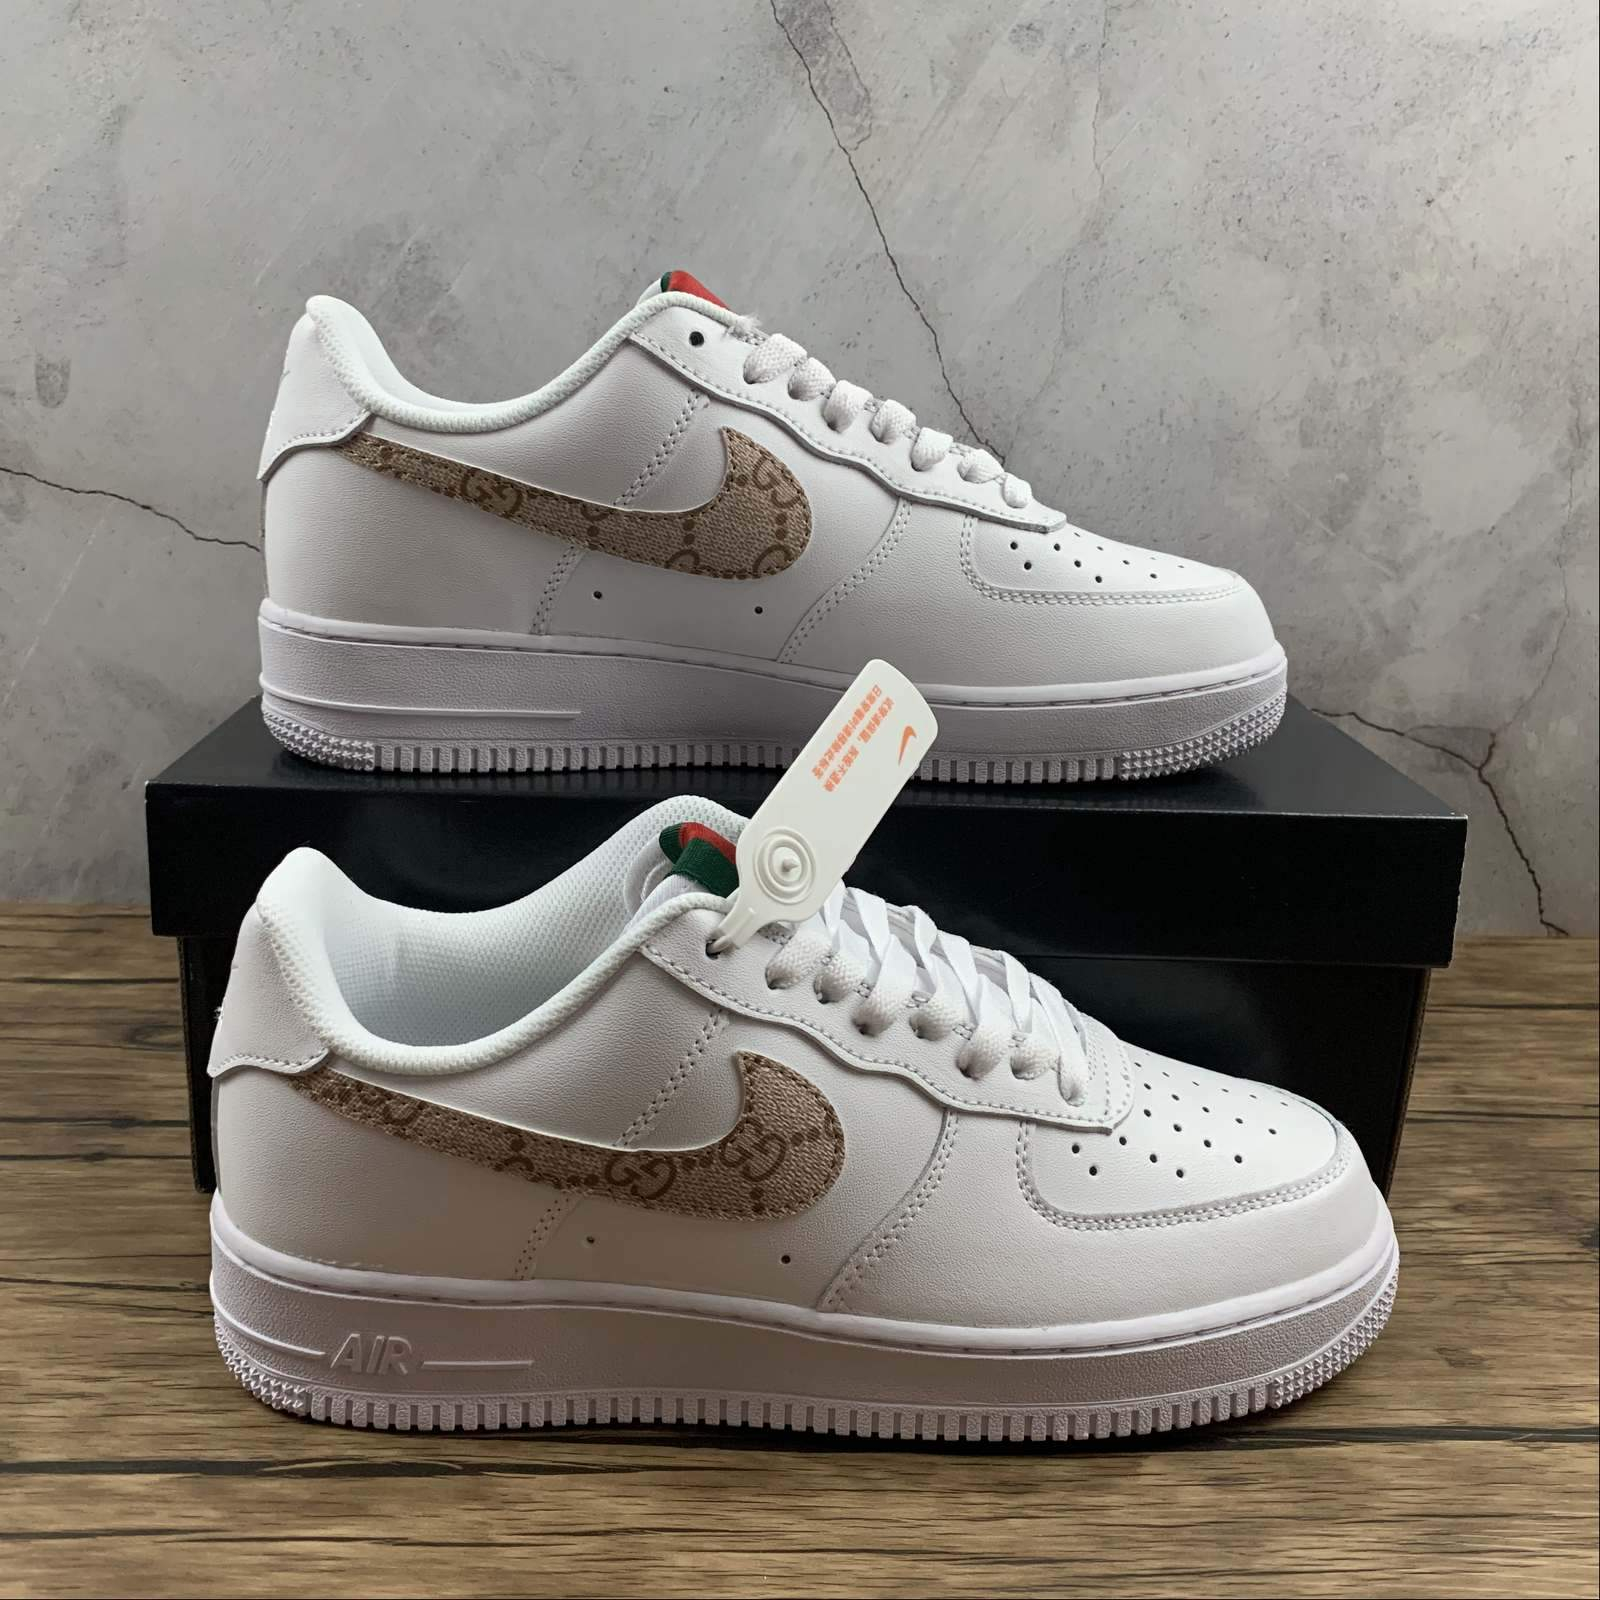 Image of Morechoice Tuhz Nike Air Force 1 07 Lx Low Sneakers GG Casual Skaet Shoes Ar7720-101